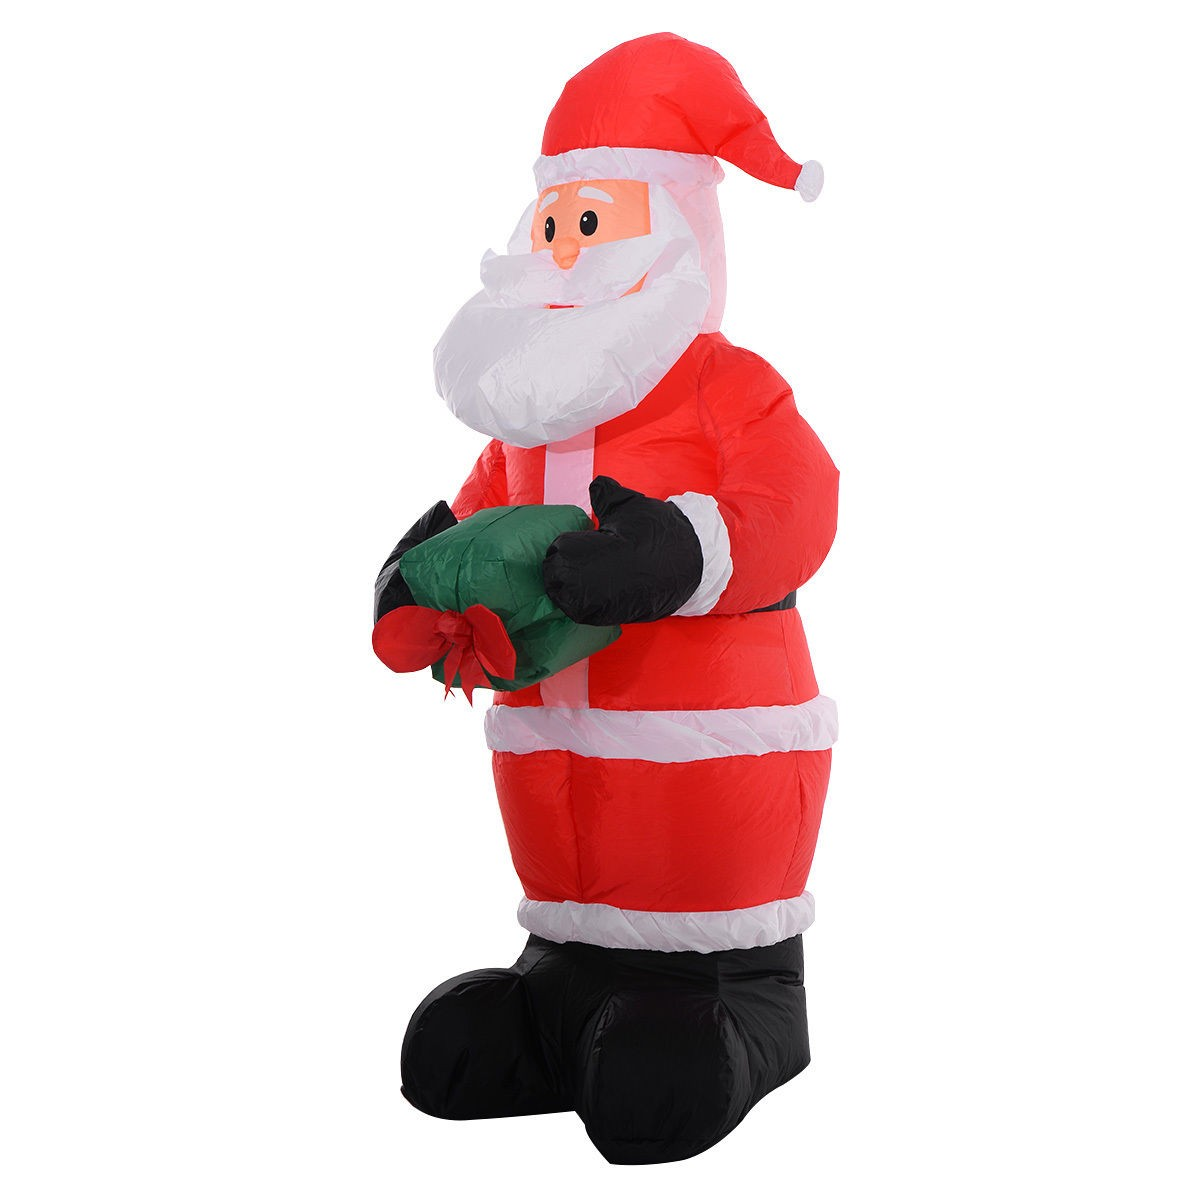 Santa Claus Lawn Decorations: Inflatable Airblown Christmas Santa Claus Xmas Decoration